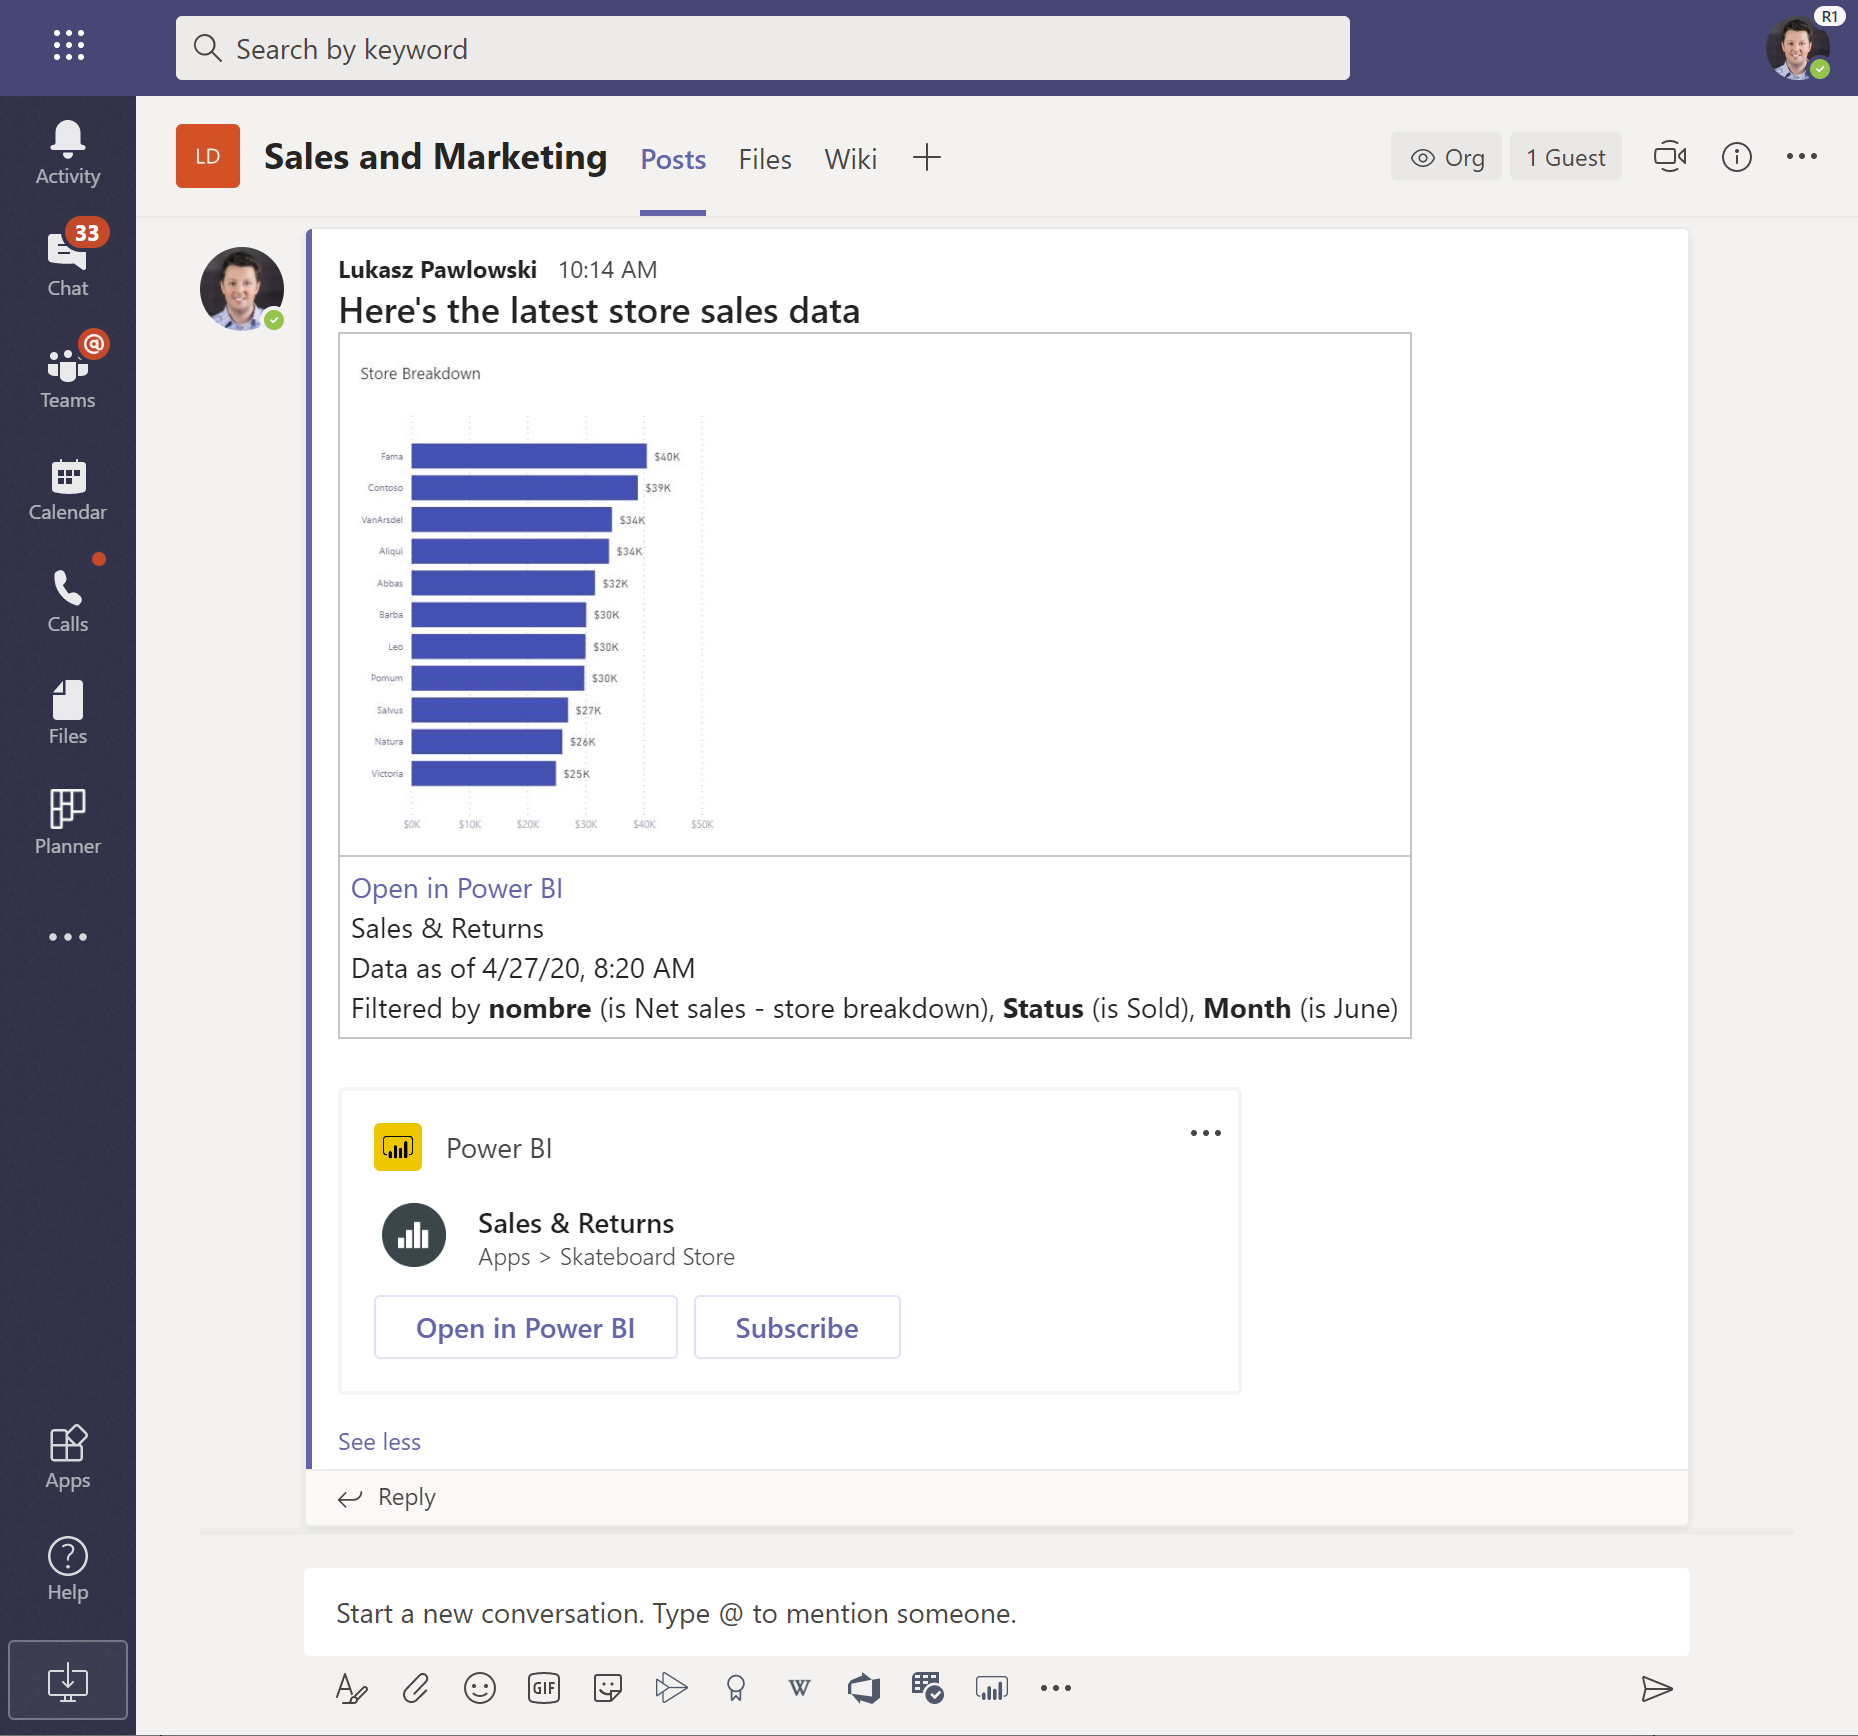 The Microsoft Teams message box is shown with a visual pasted from Power BI and the rich link preview under it.